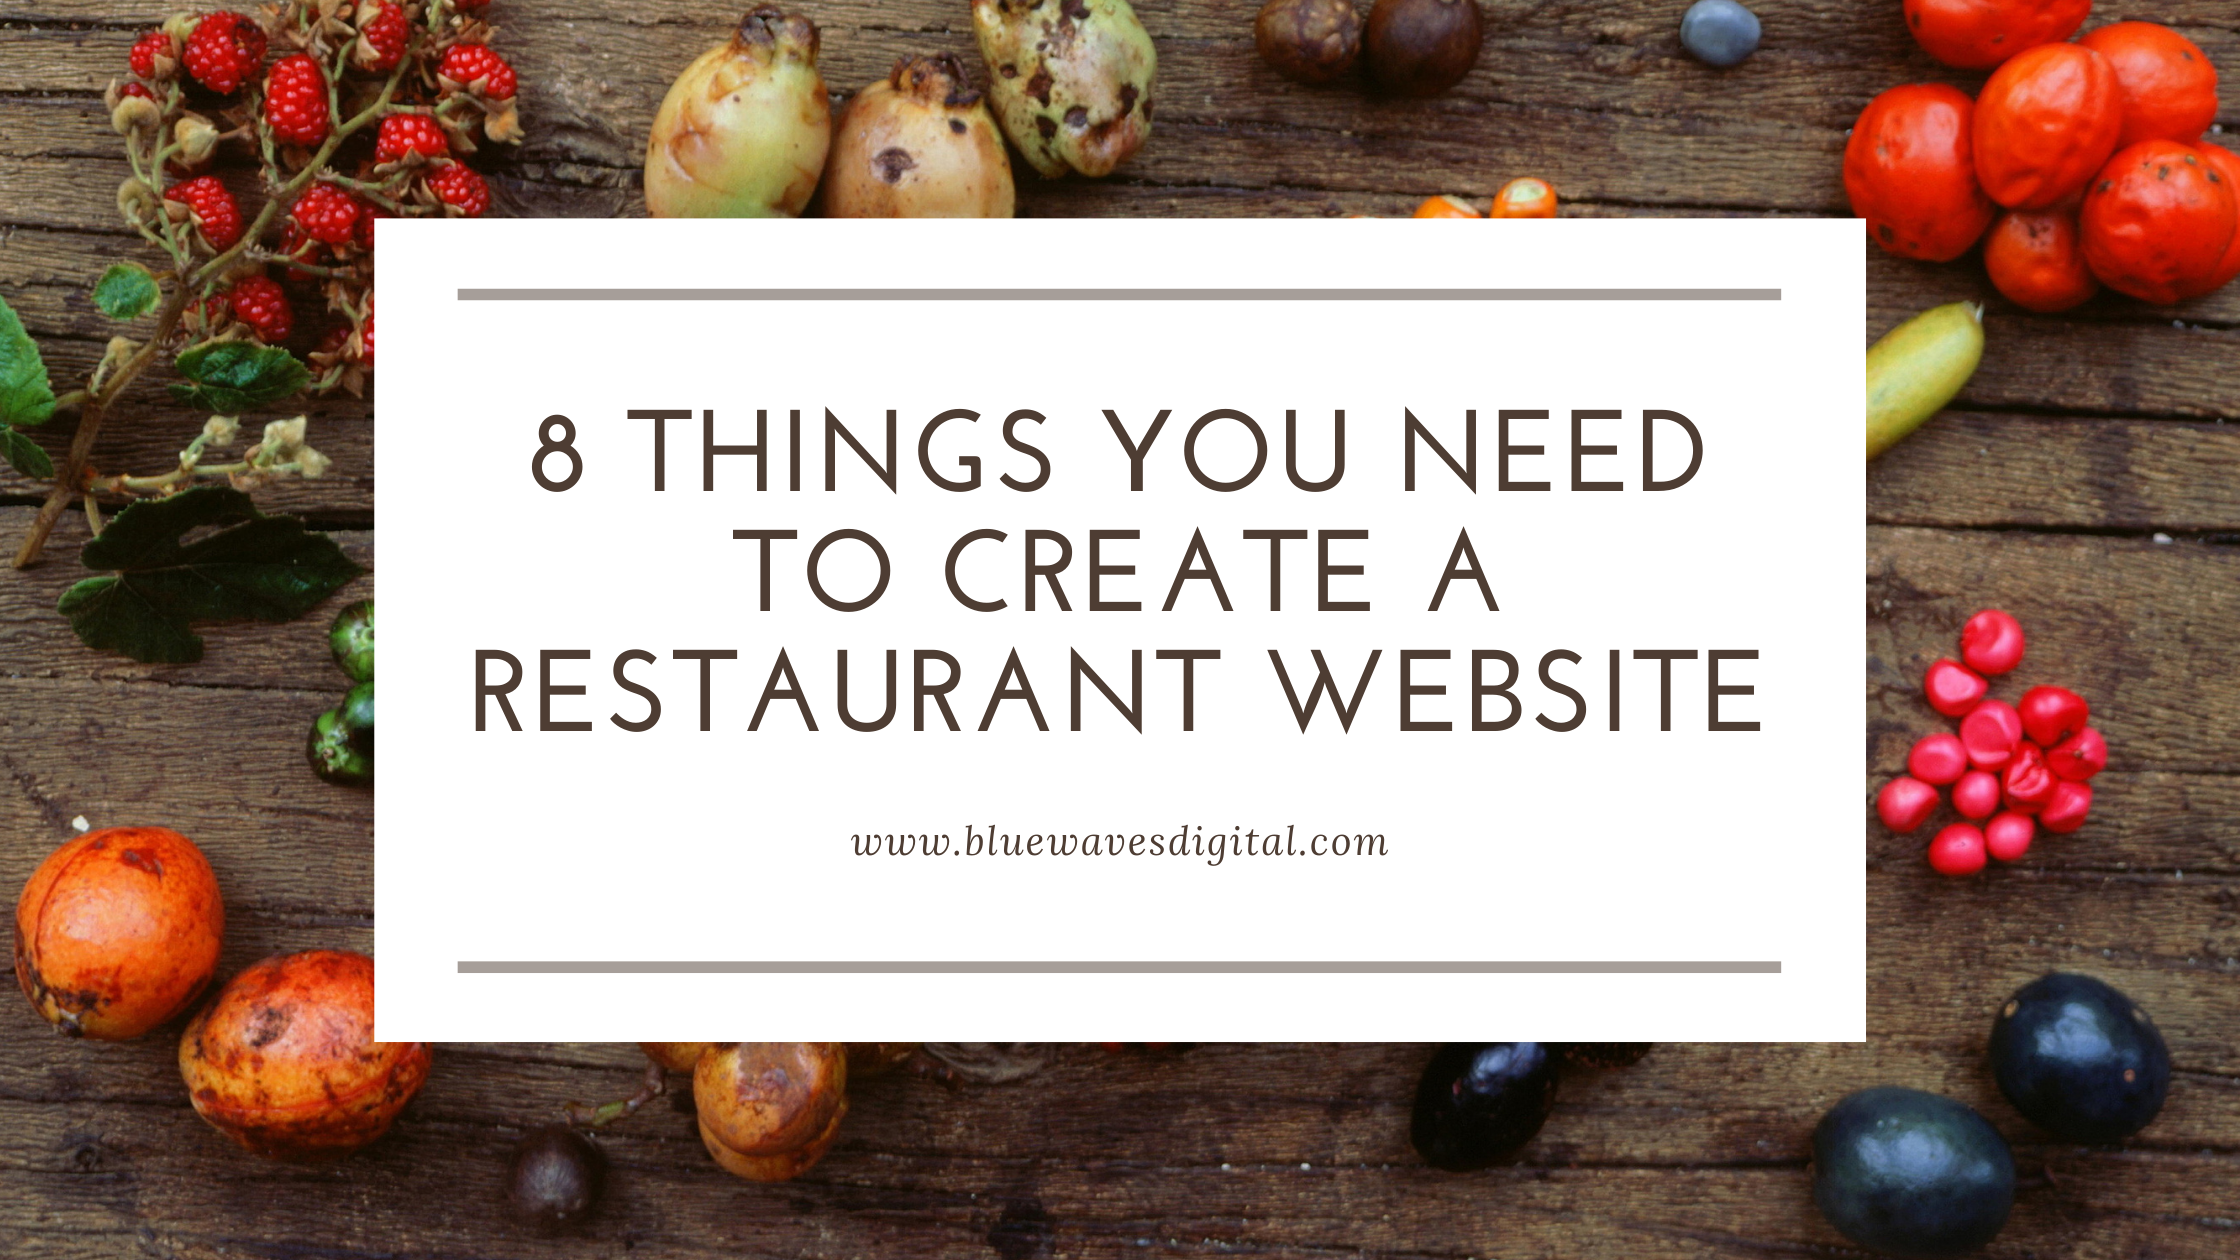 8 Things You Need to Create a Restaurant Website